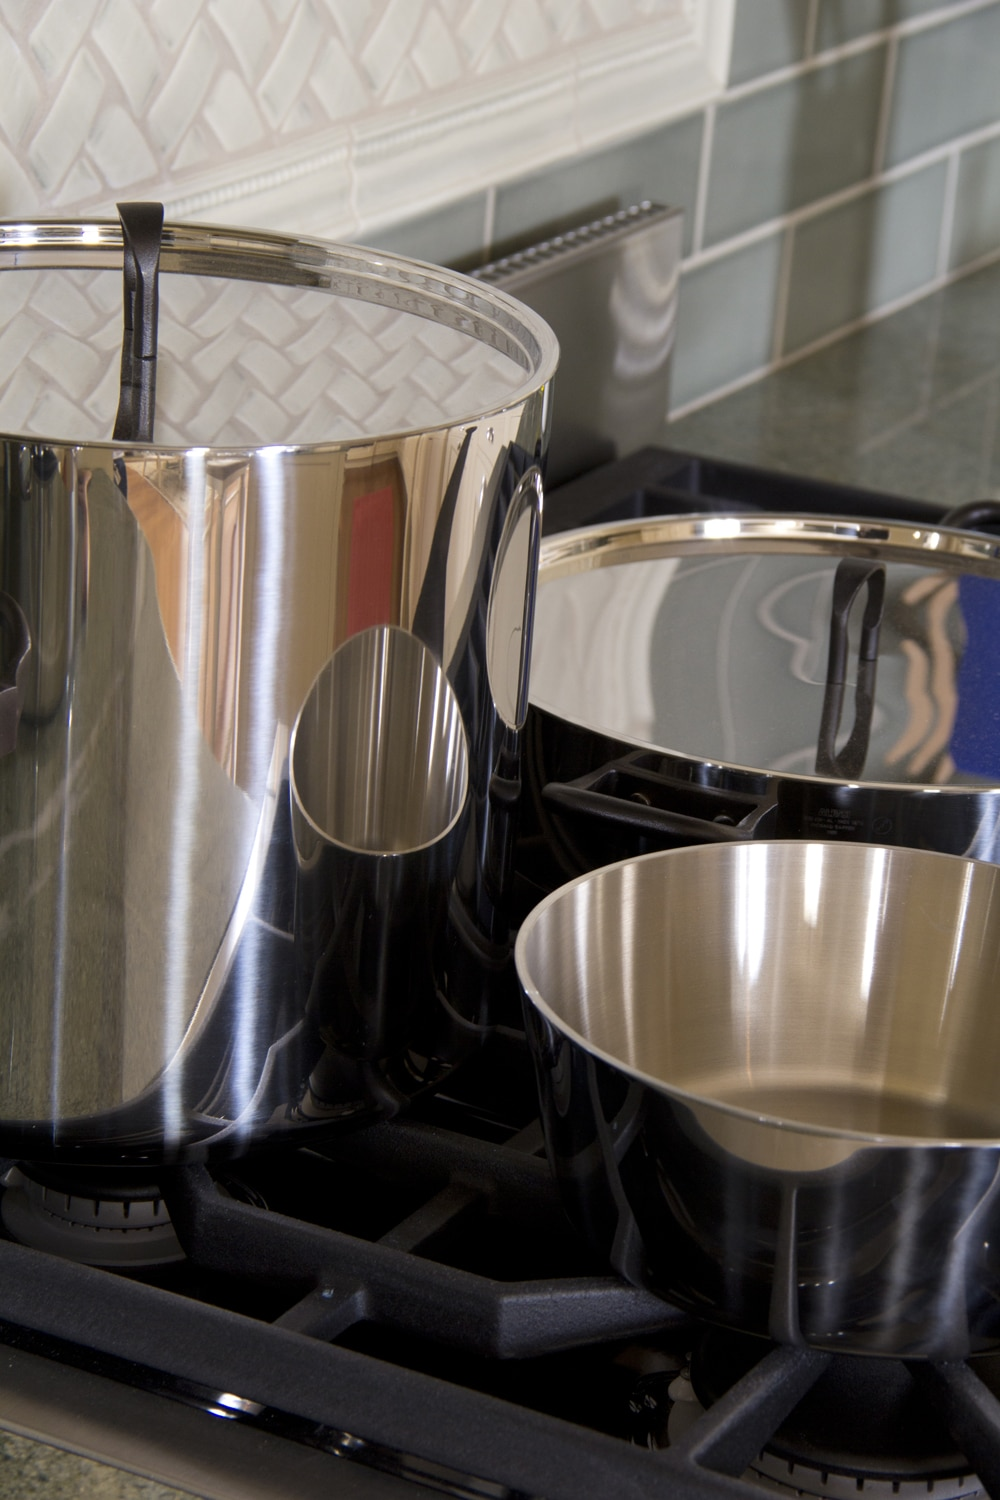 review stainless steel cookware, best brand for stainless steel cookware